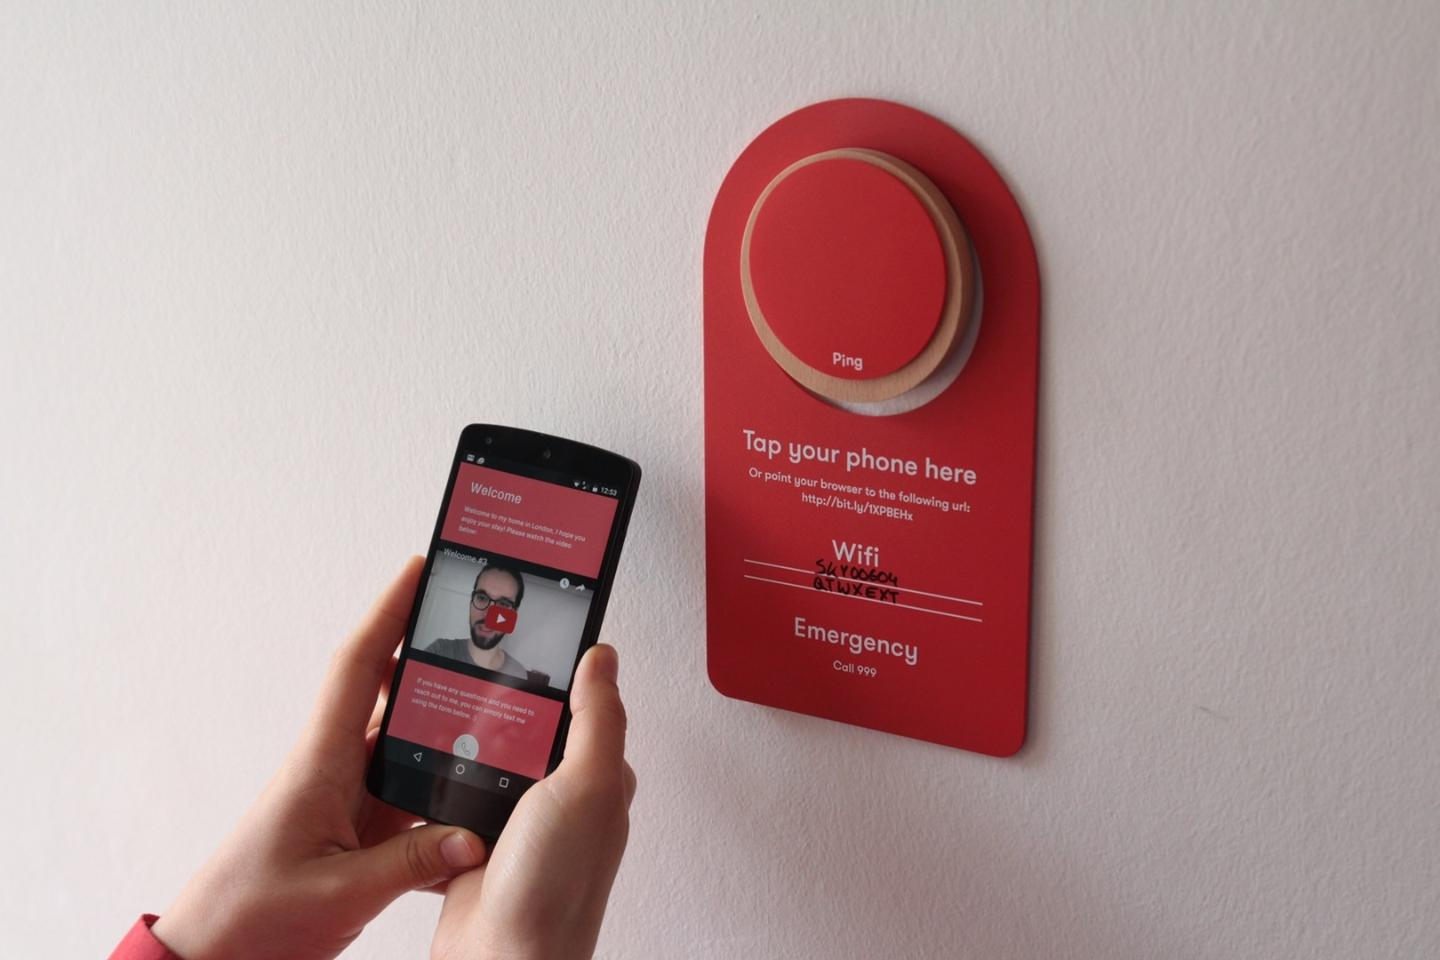 The Pings can be scanned using a smartphone's NFC or a URL can be entered into the smartphone's browser